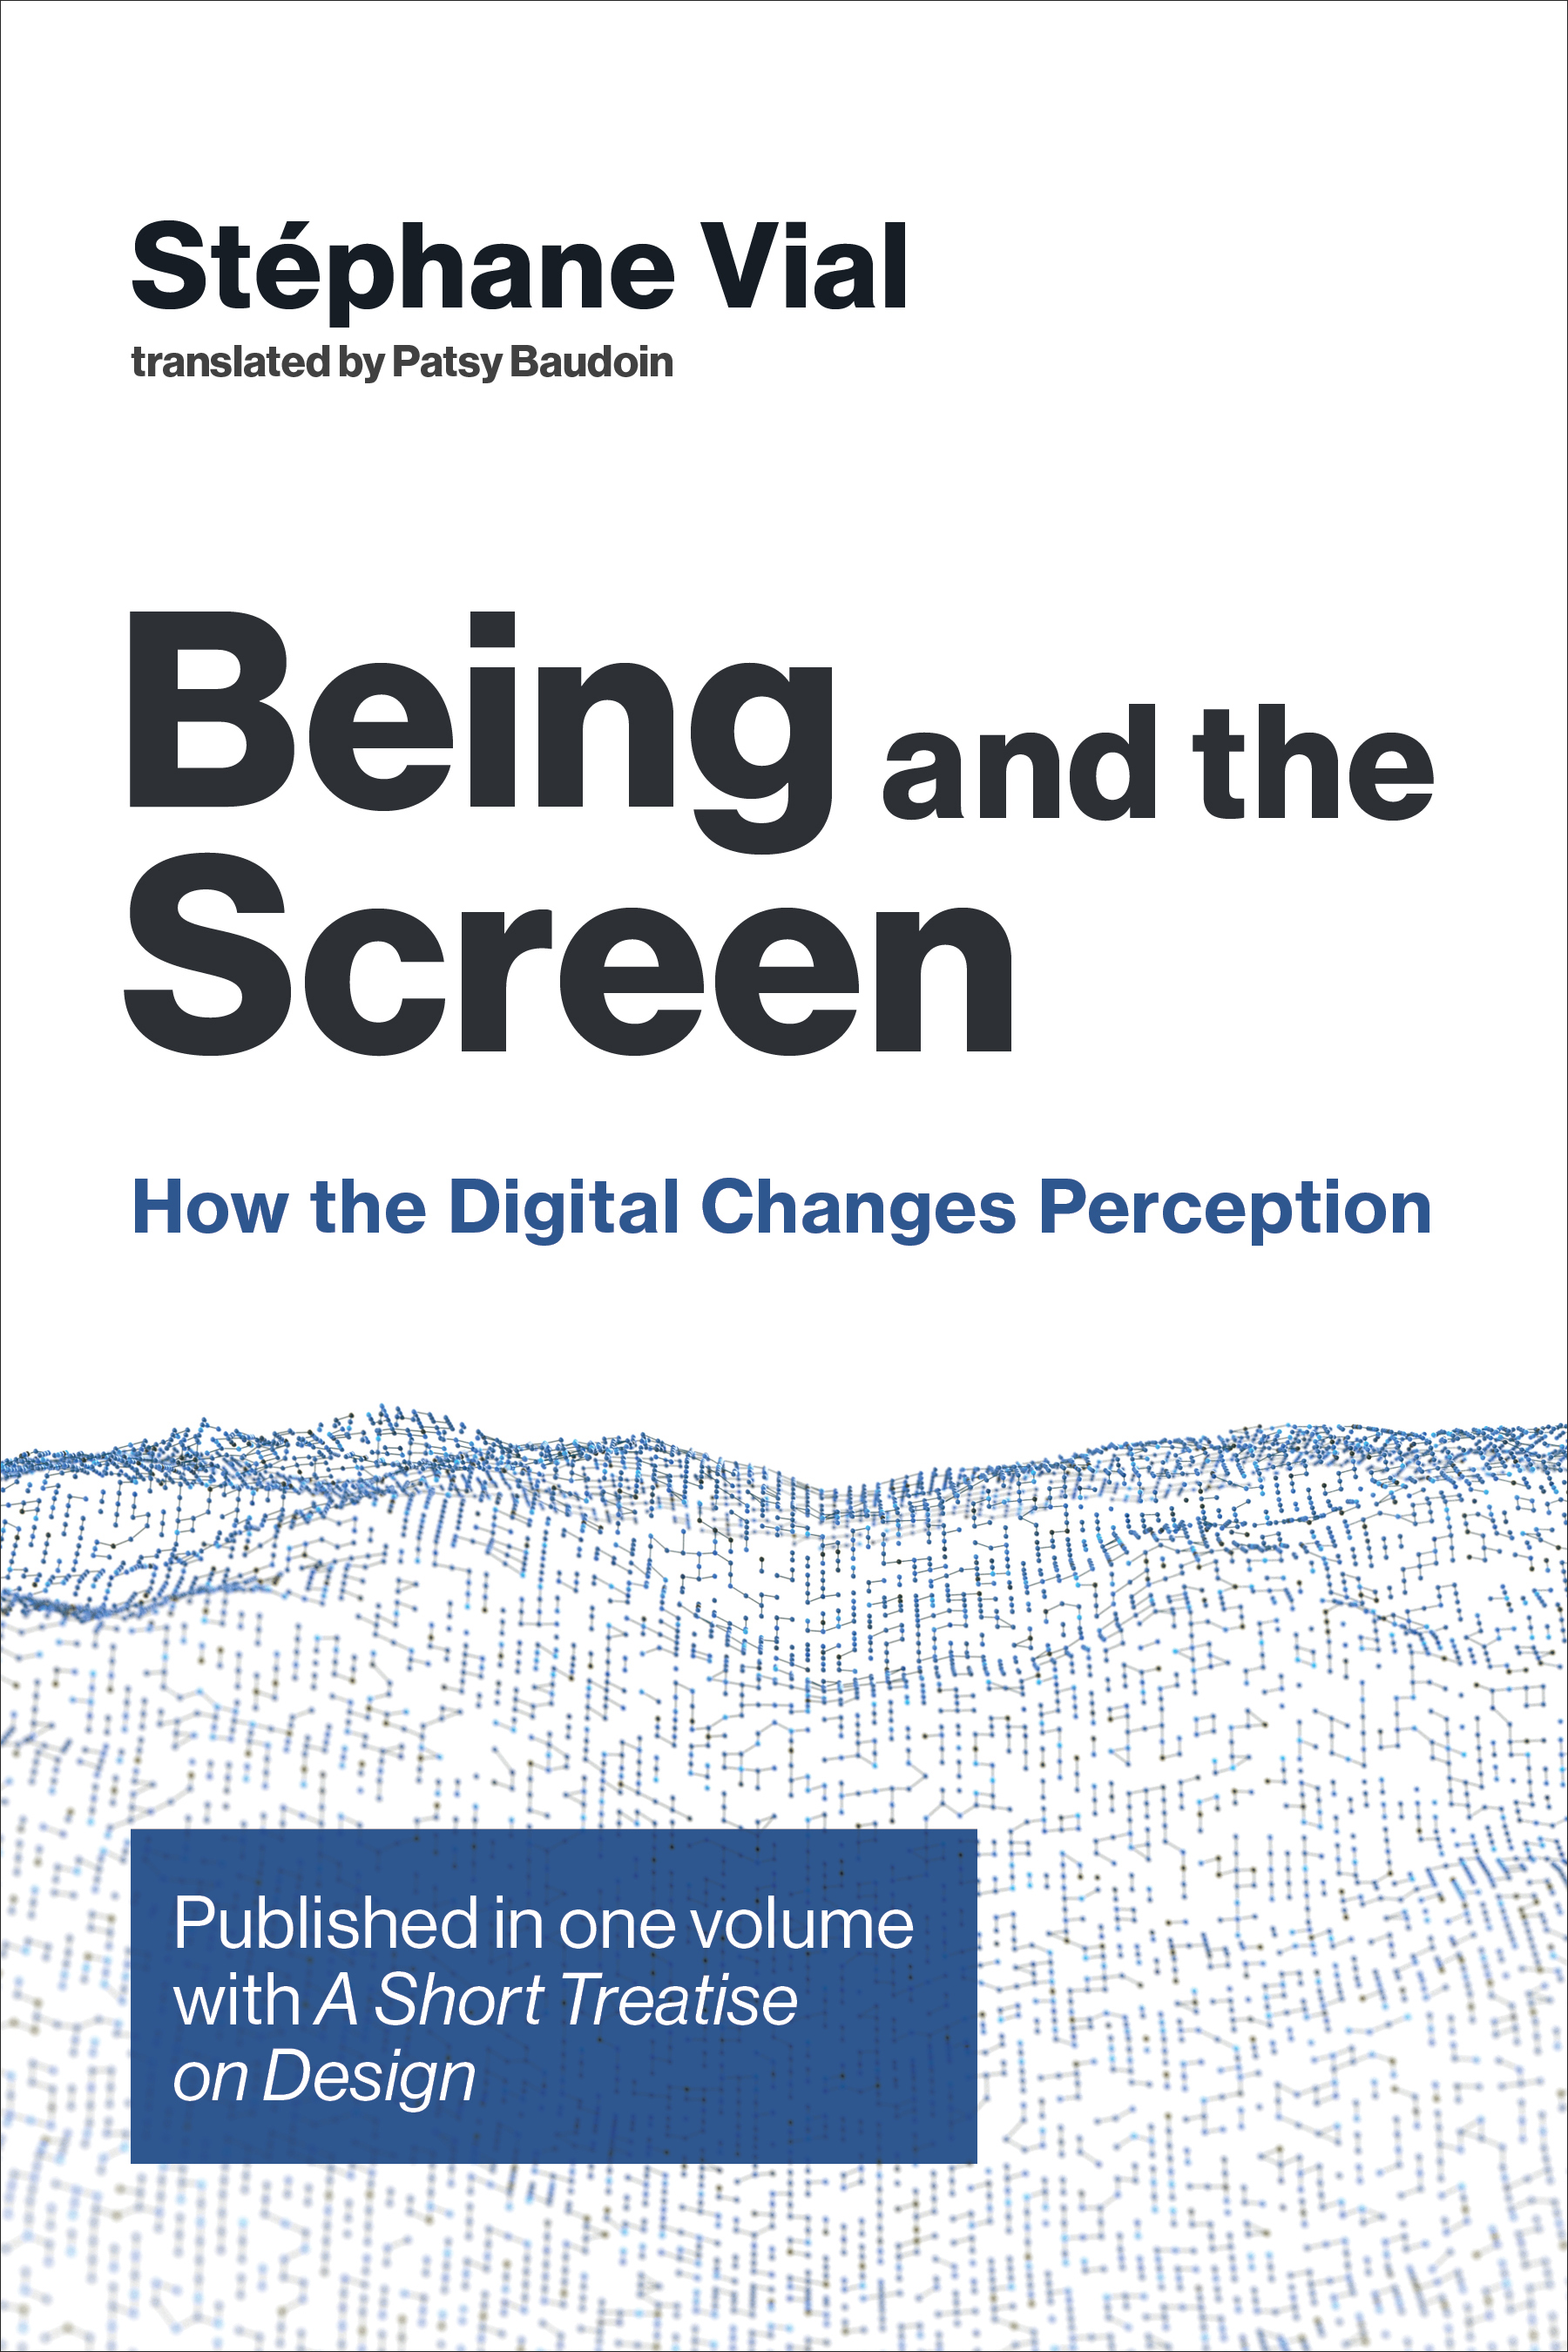 Being and the Screen, by Stéphane Vial